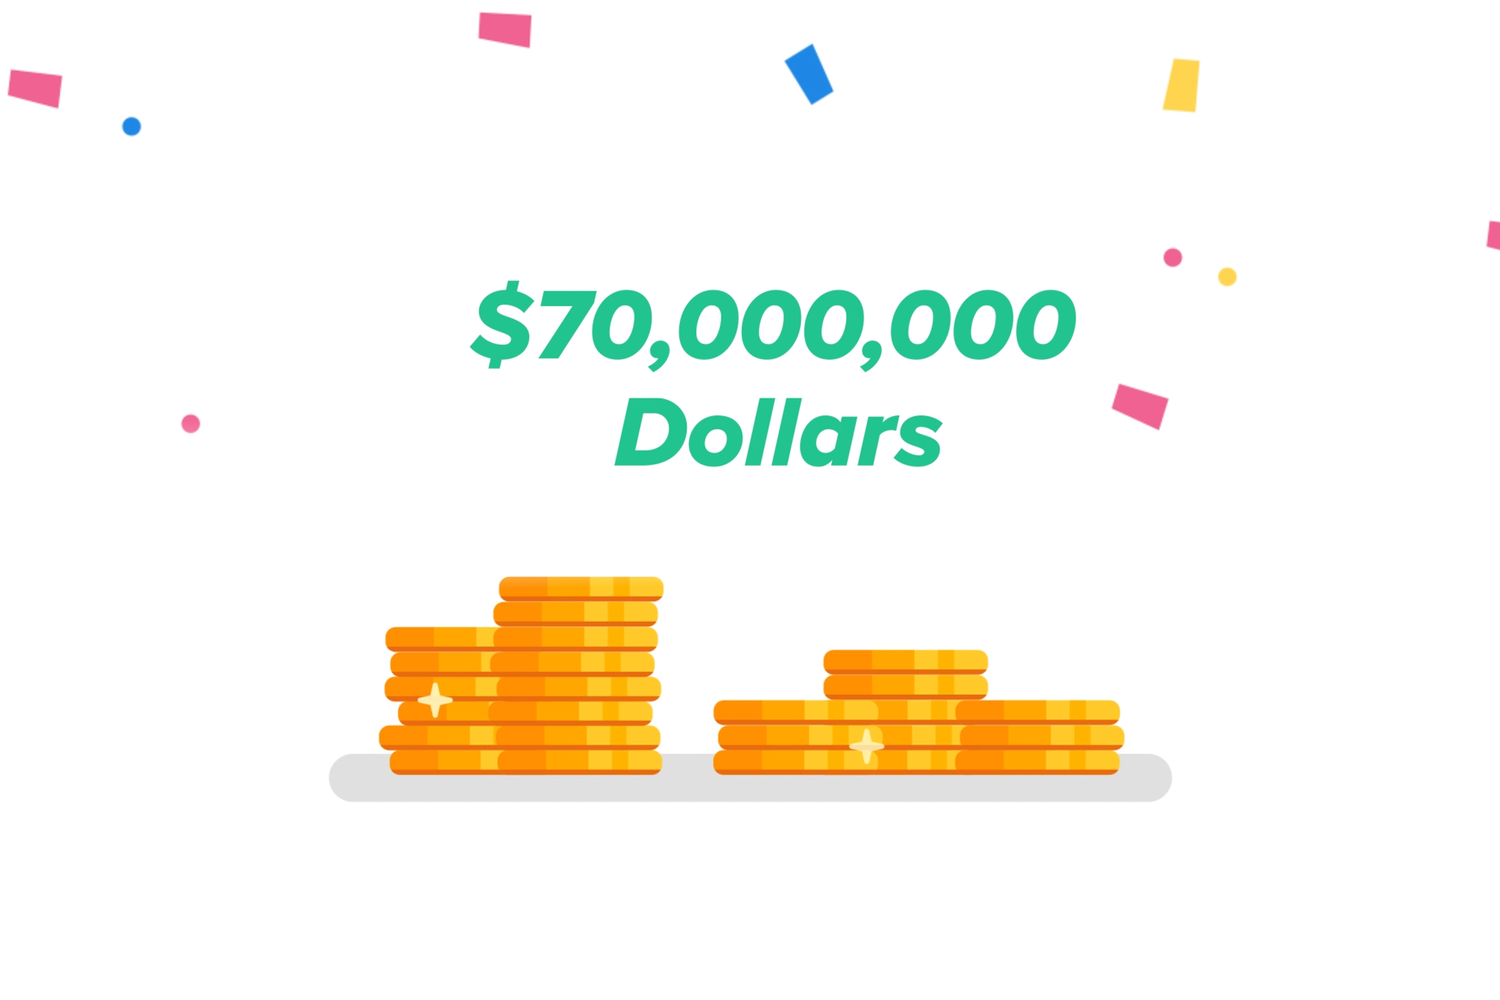 jackpocket lottery app players have Won $70 million in prizes to date